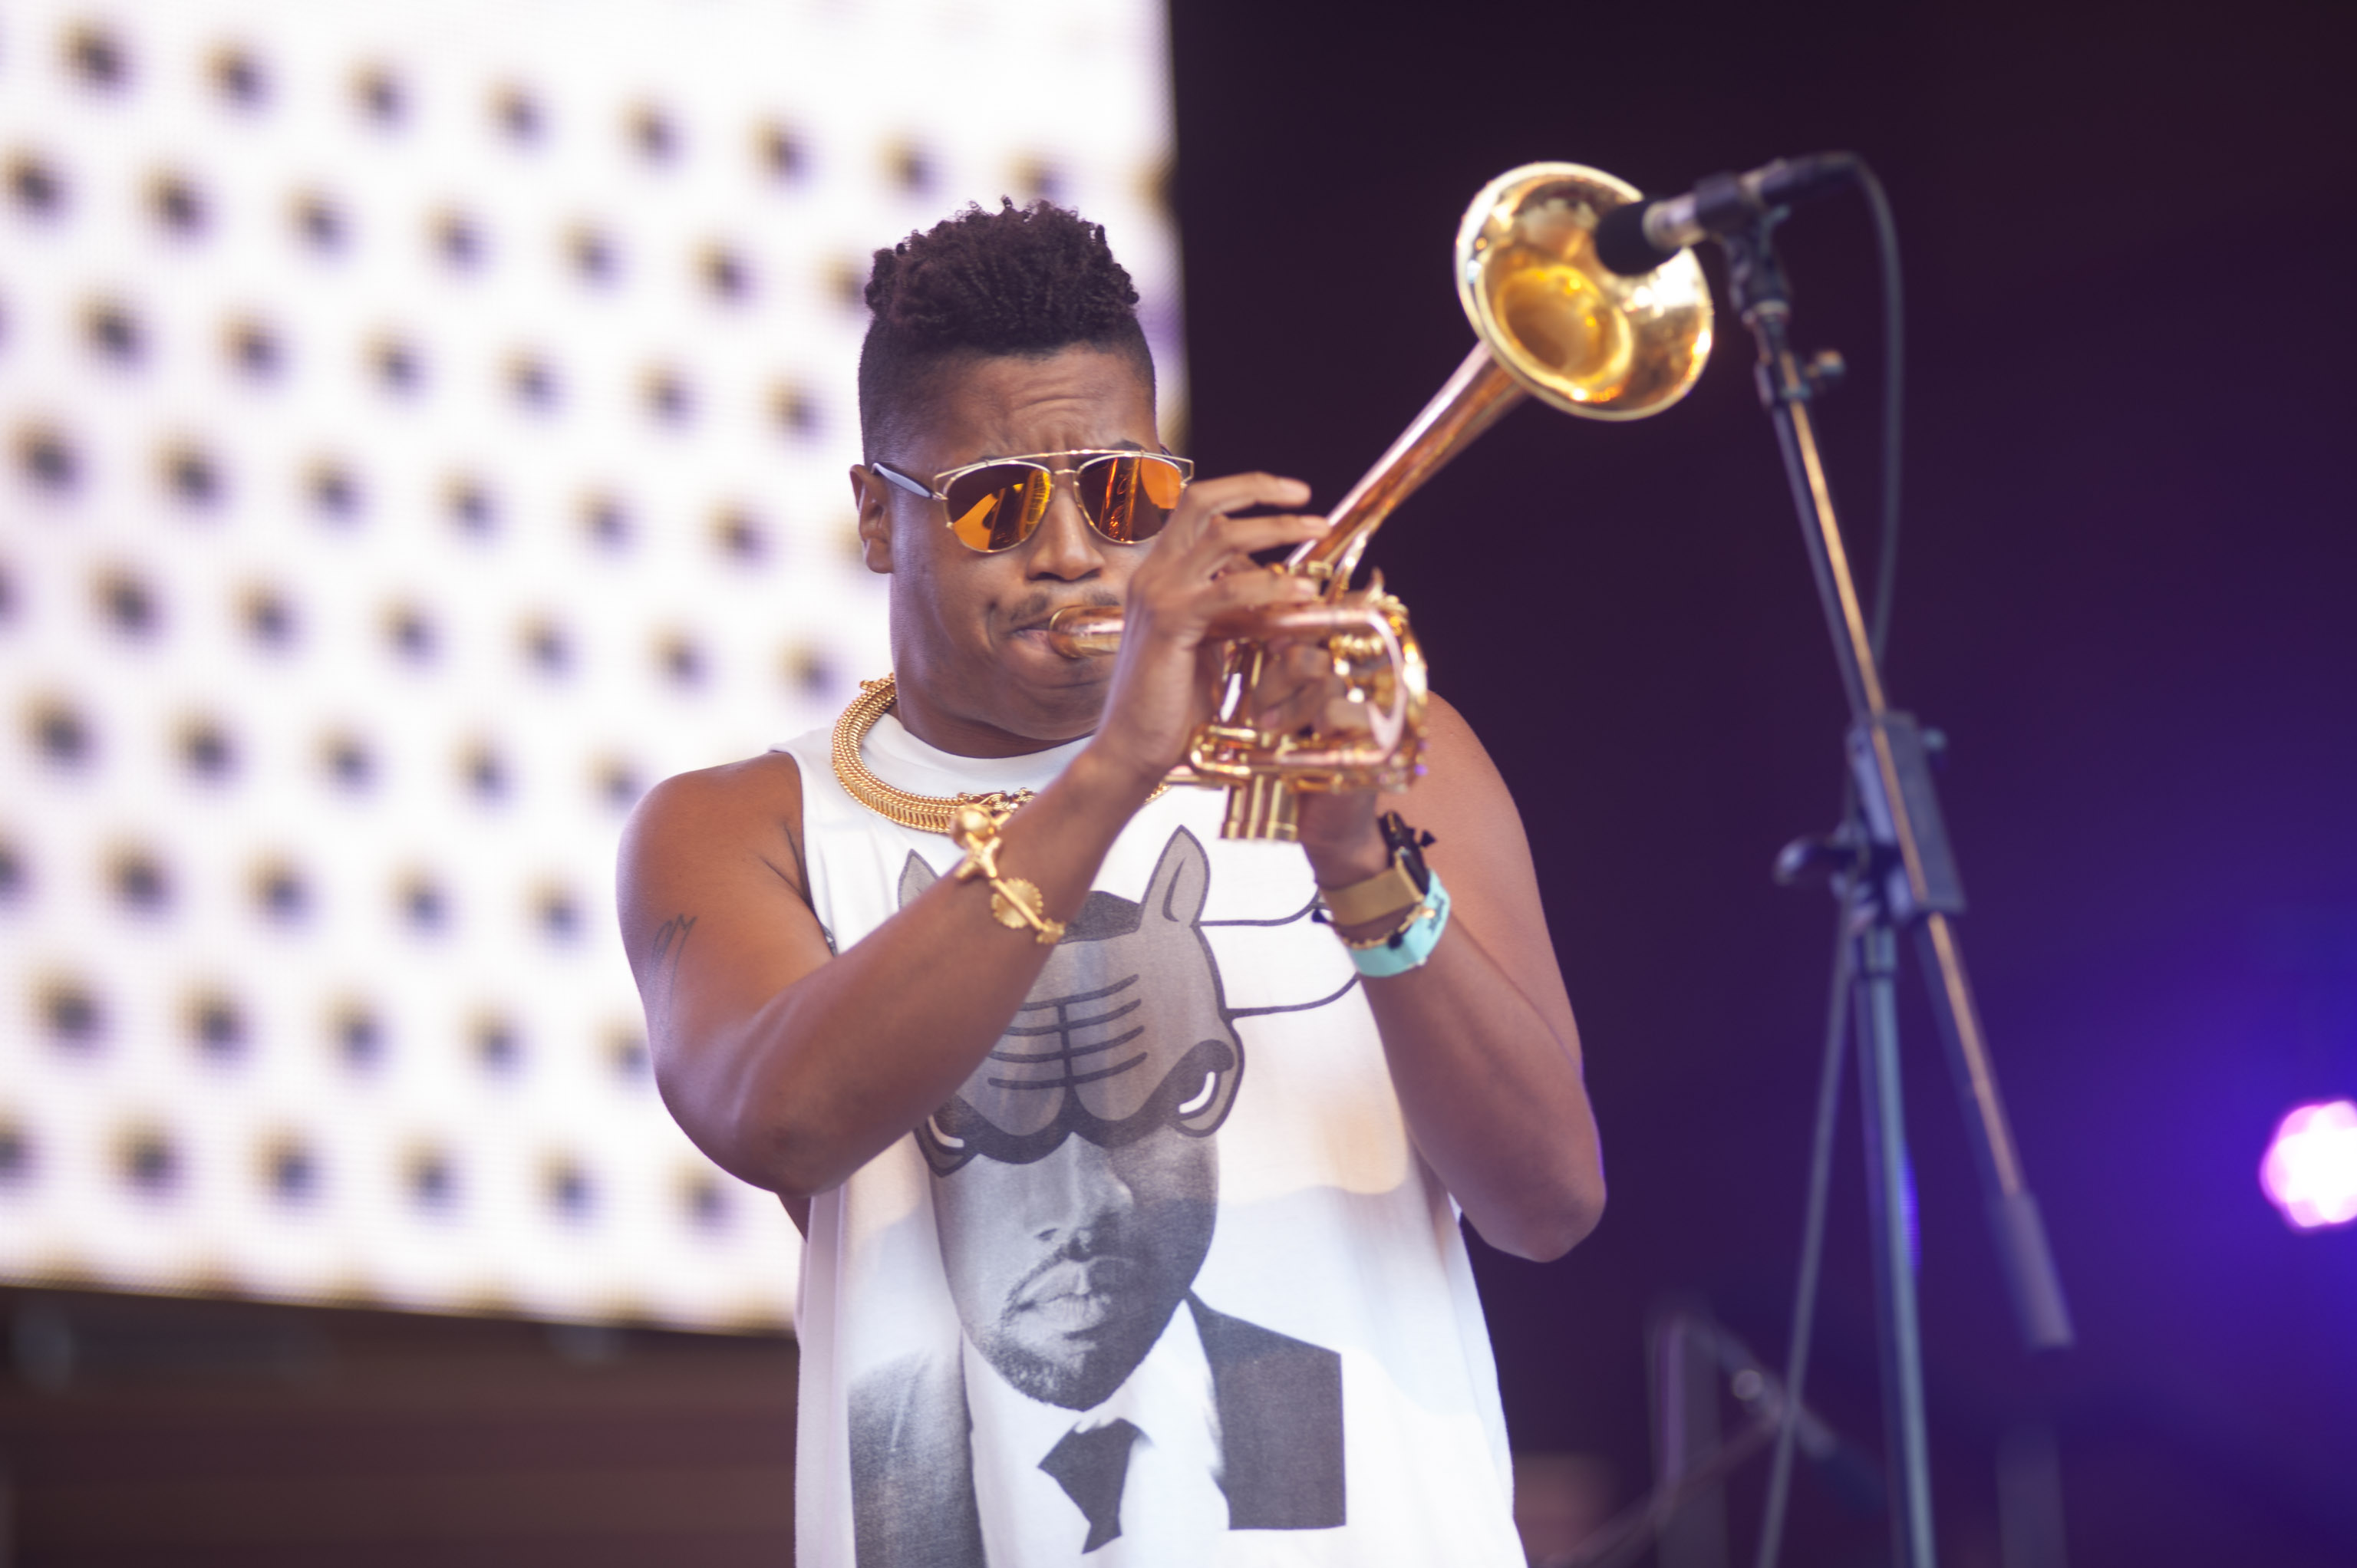 Chicago Jazz Festival: Schedules, performances, how to get there